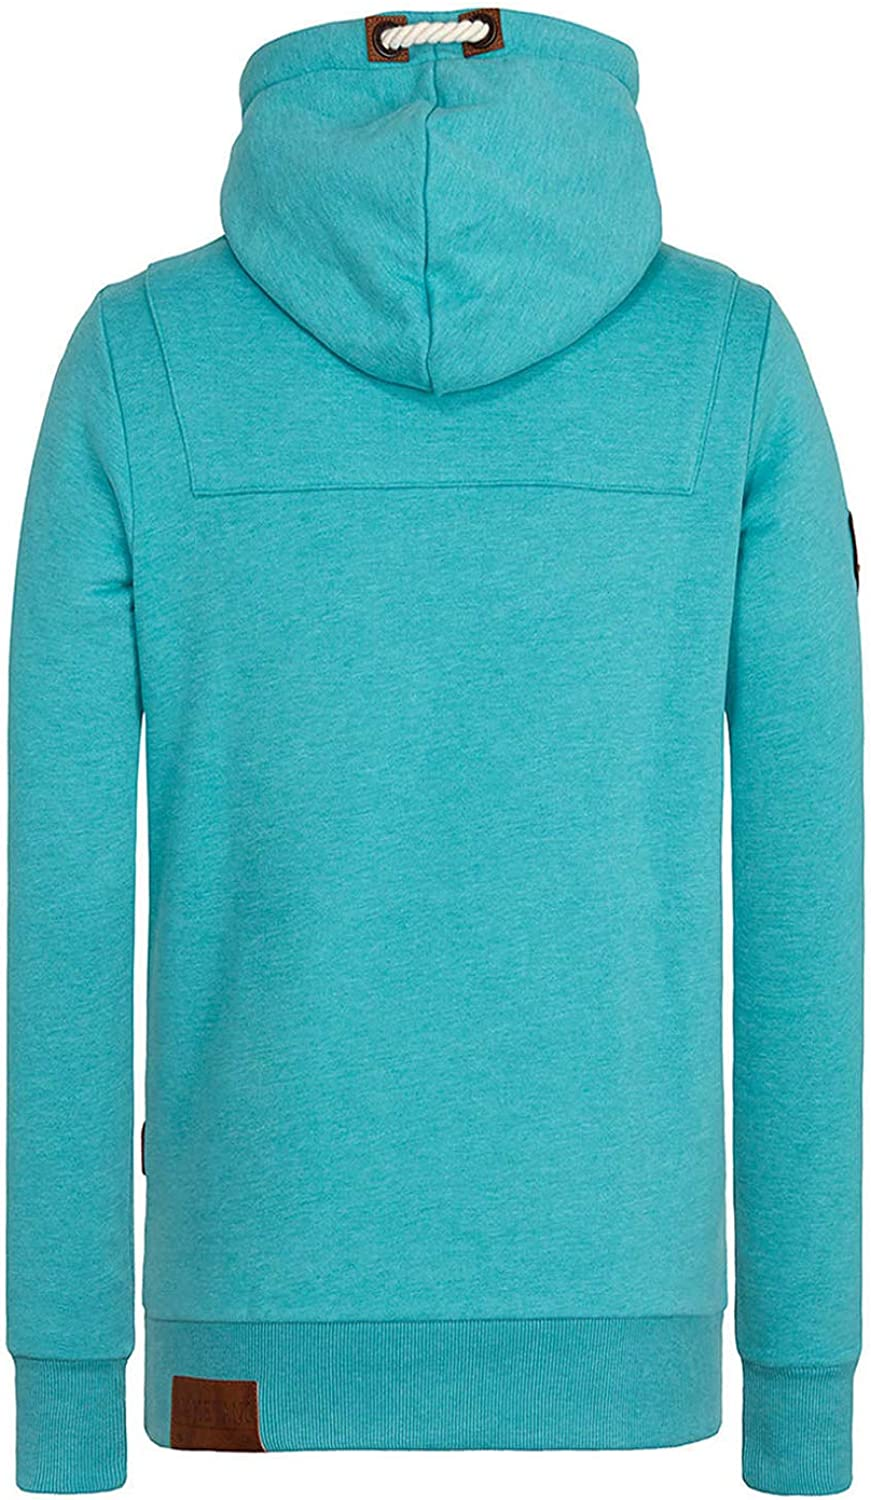 NAKETANO Lennox Hooded Sweatshirt for Men Green